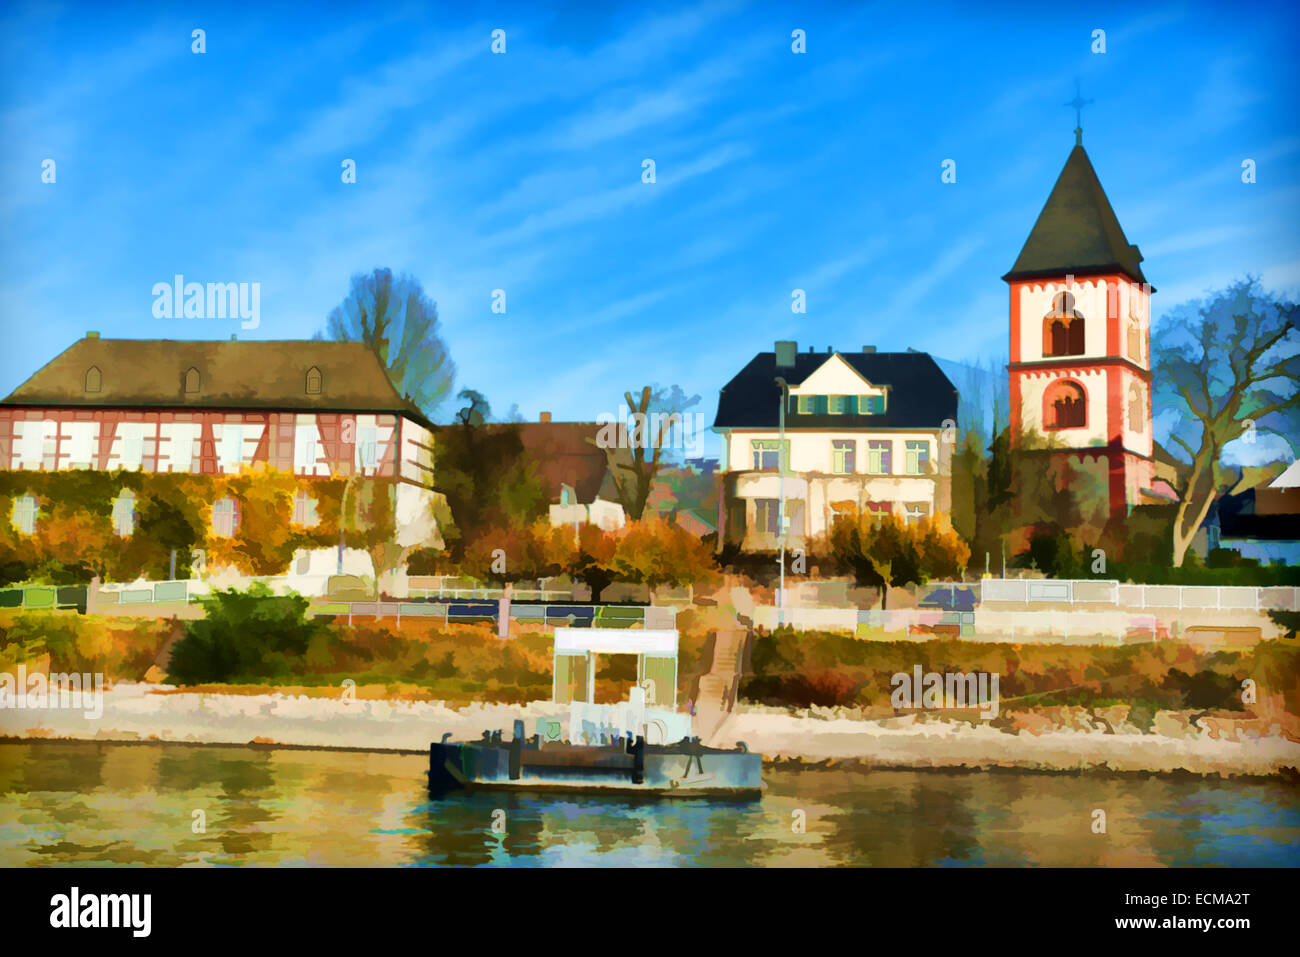 Belle peinture d'un riverside village en Europe Photo Stock